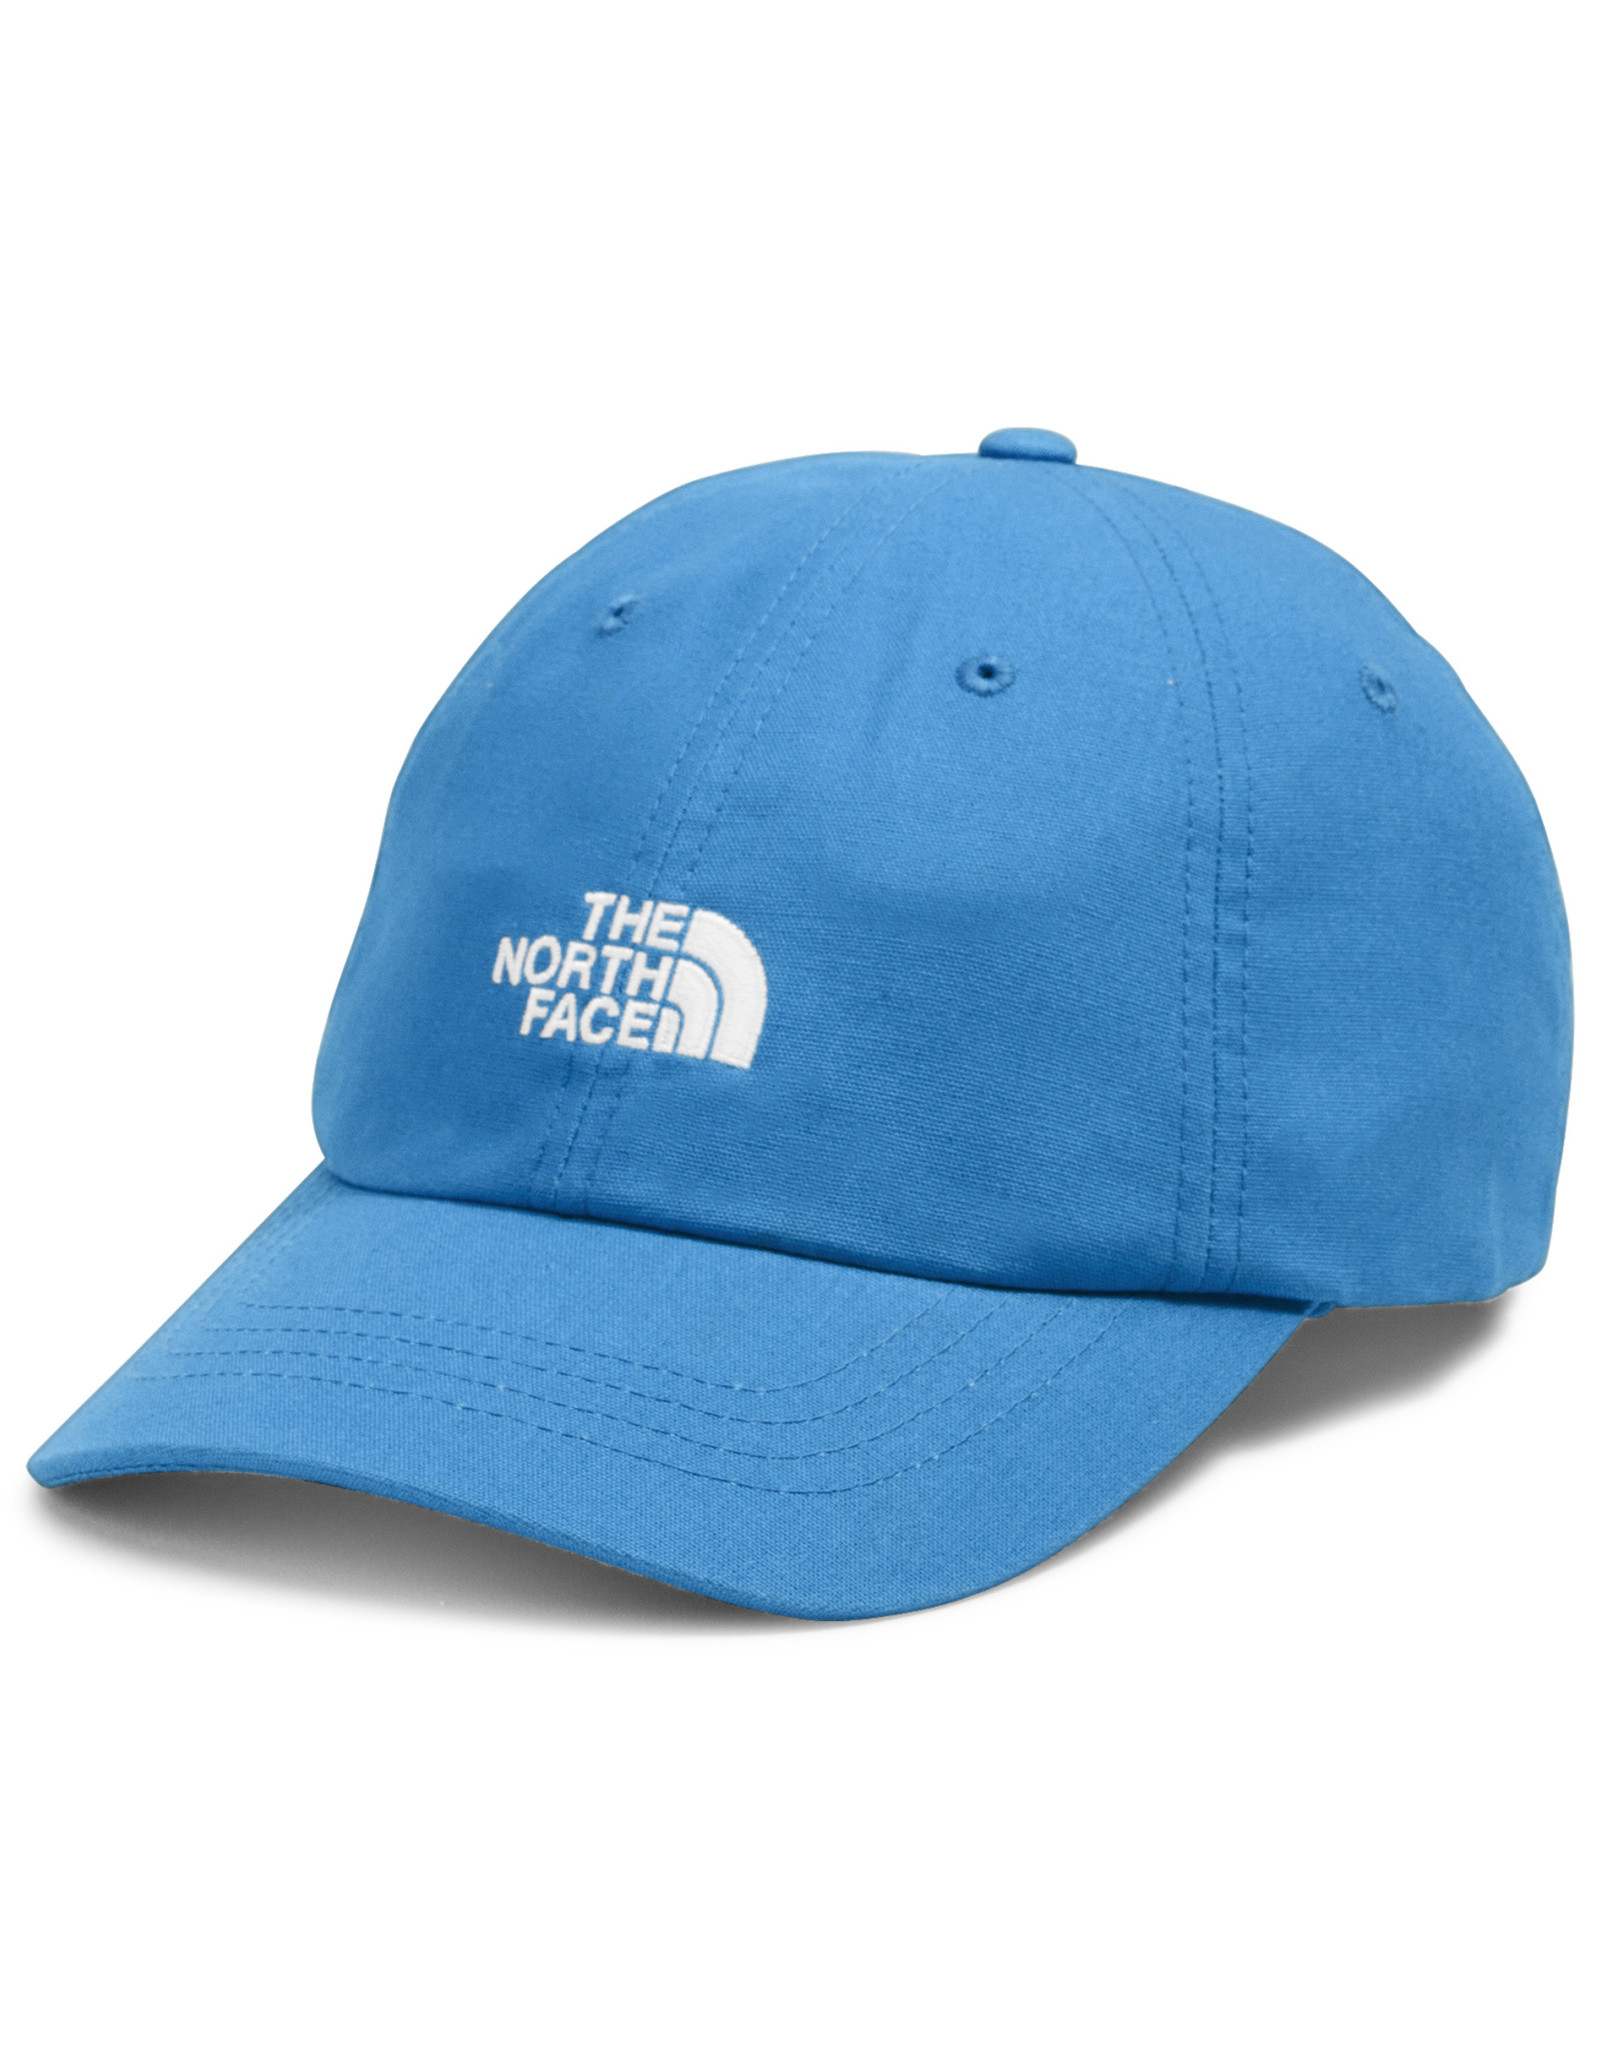 The North Face The North Face Norm Hat - S2020